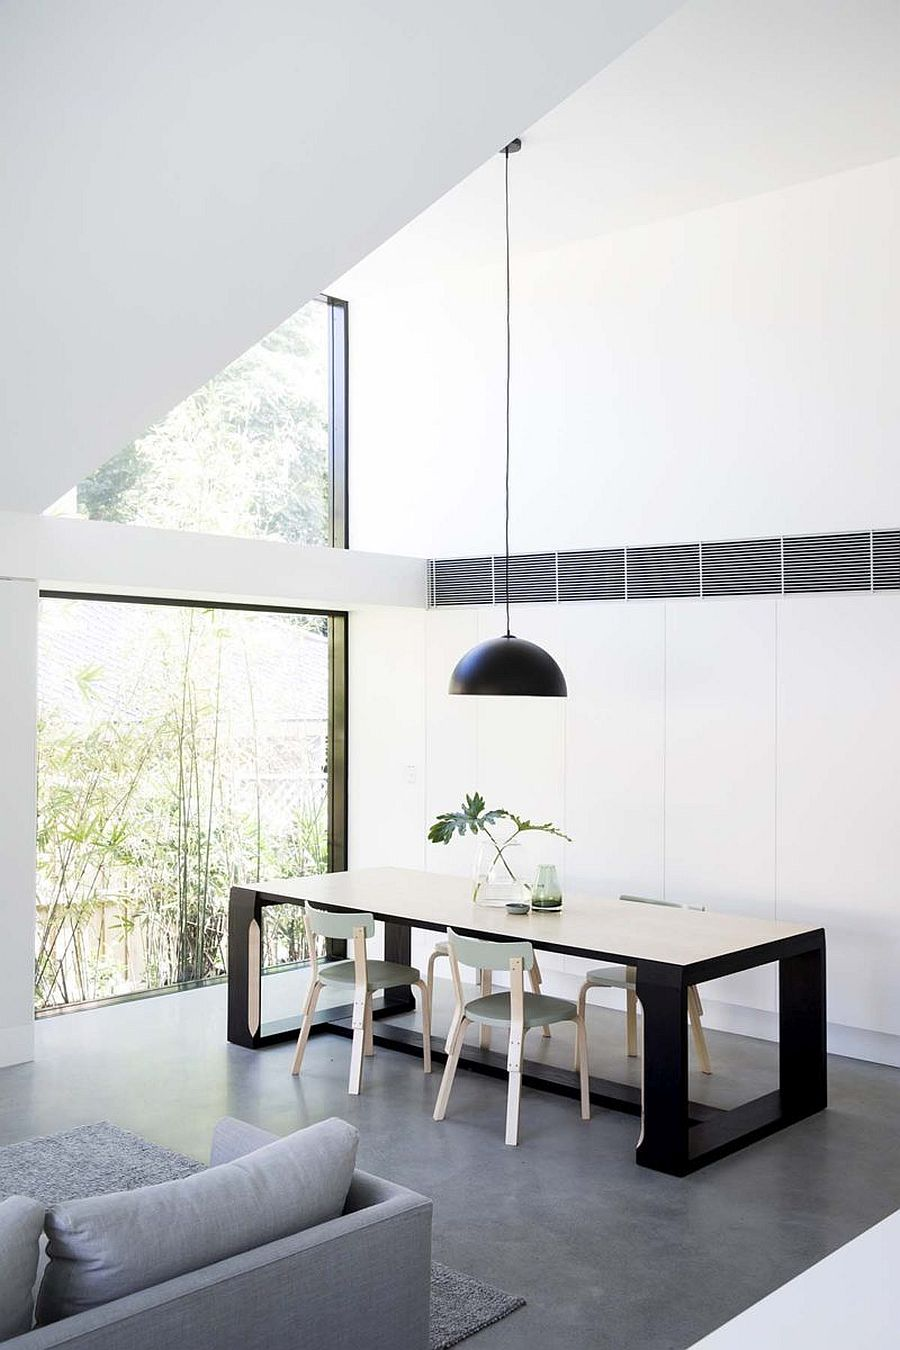 Glass-walls-and-sliding-glass-doors-bring-a-flood-of-natural-light-into-the-new-extension-34411